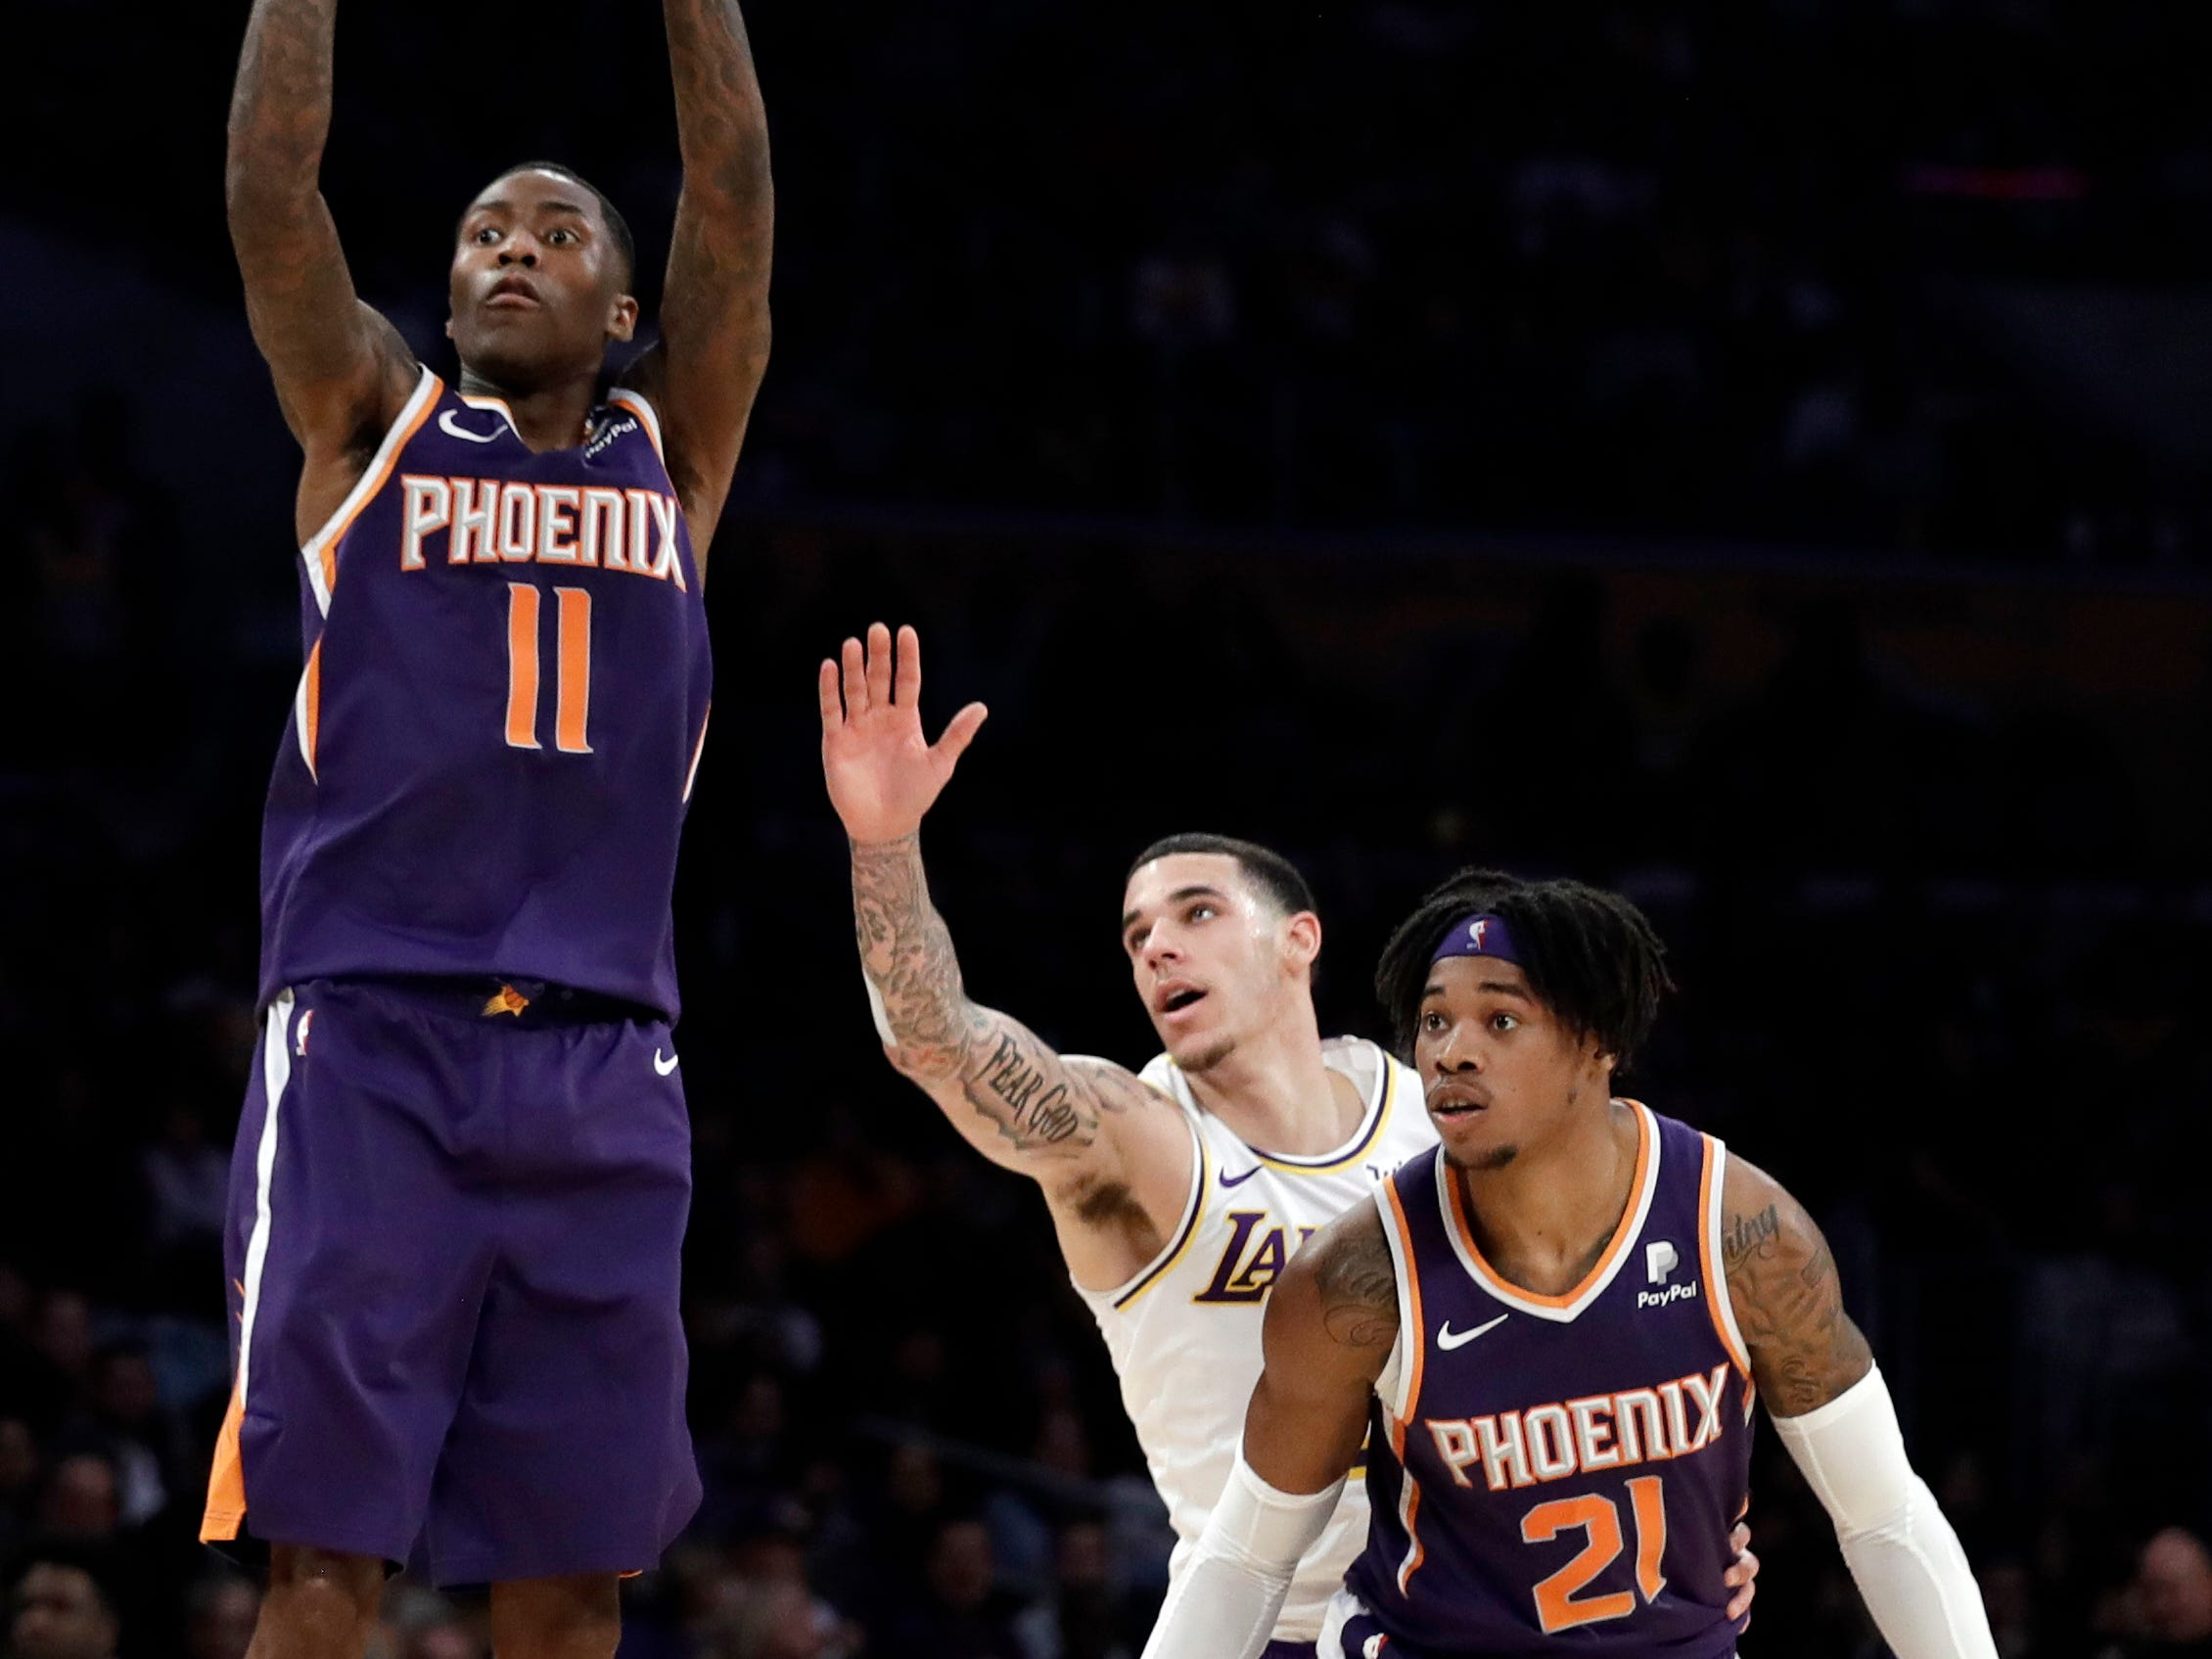 Phoenix Suns' Jamal Crawford (11) shoots past Los Angeles Lakers' Lonzo Ball, center, and teammate Richaun Holmes (21) during the first half of an NBA basketball game Sunday, Dec. 2, 2018, in Los Angeles. (AP Photo/Marcio Jose Sanchez)